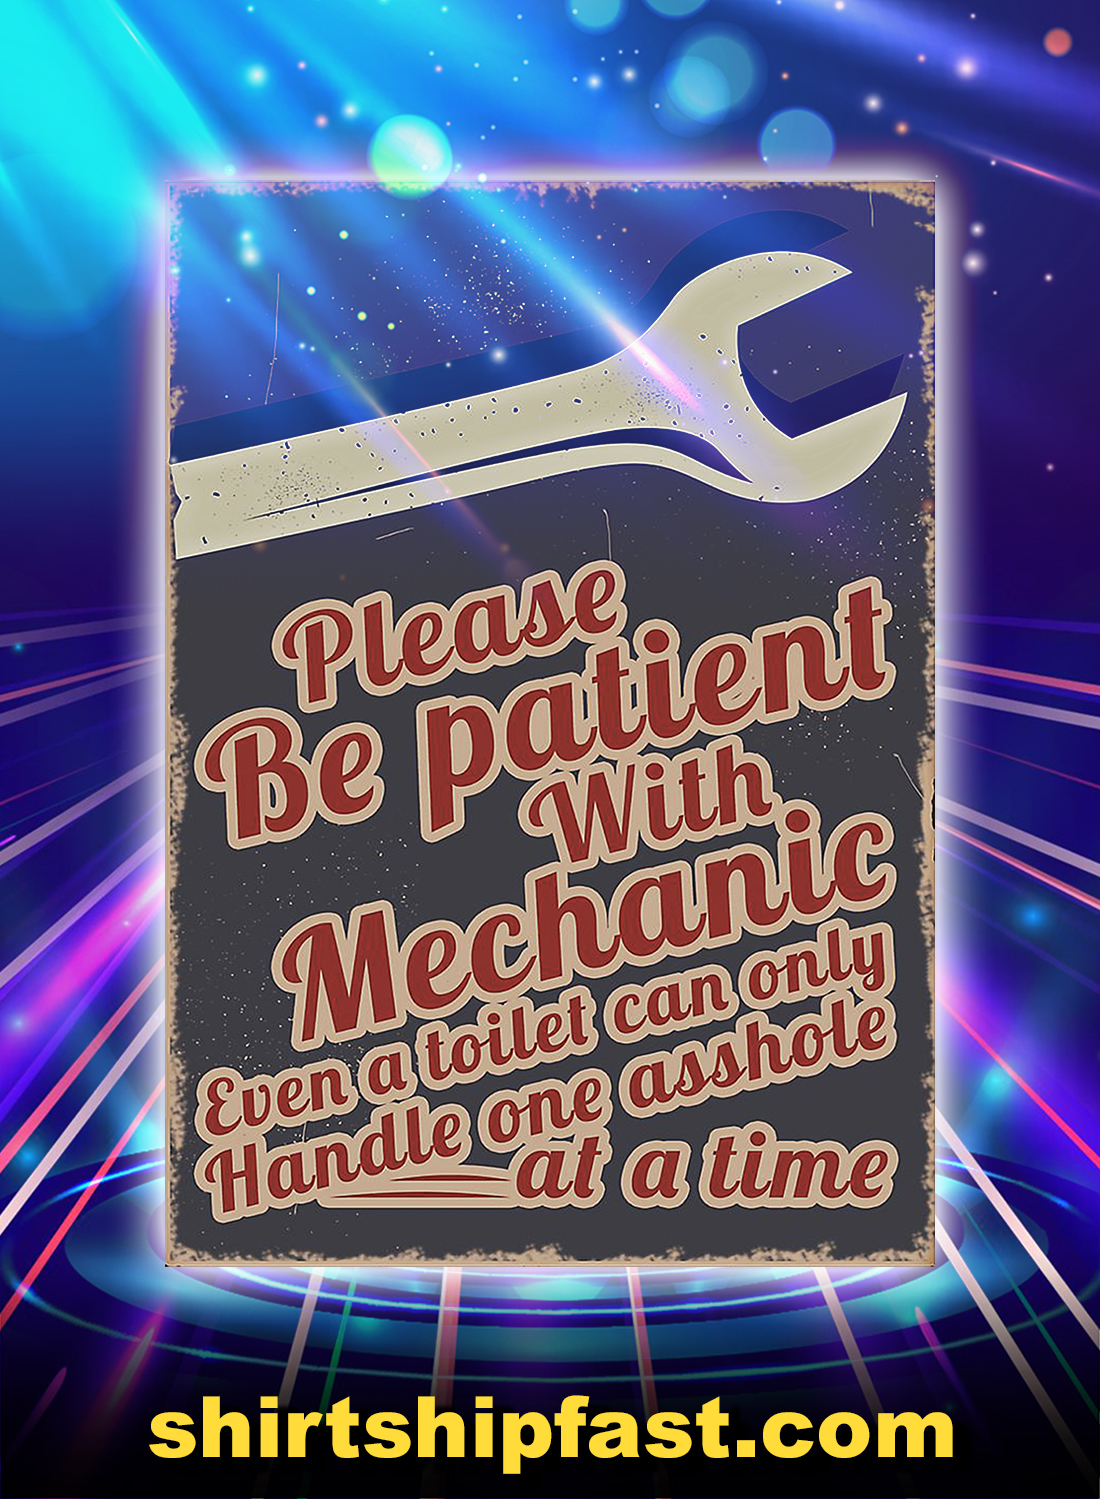 Please Be Patient With Mechanic Poster - A4